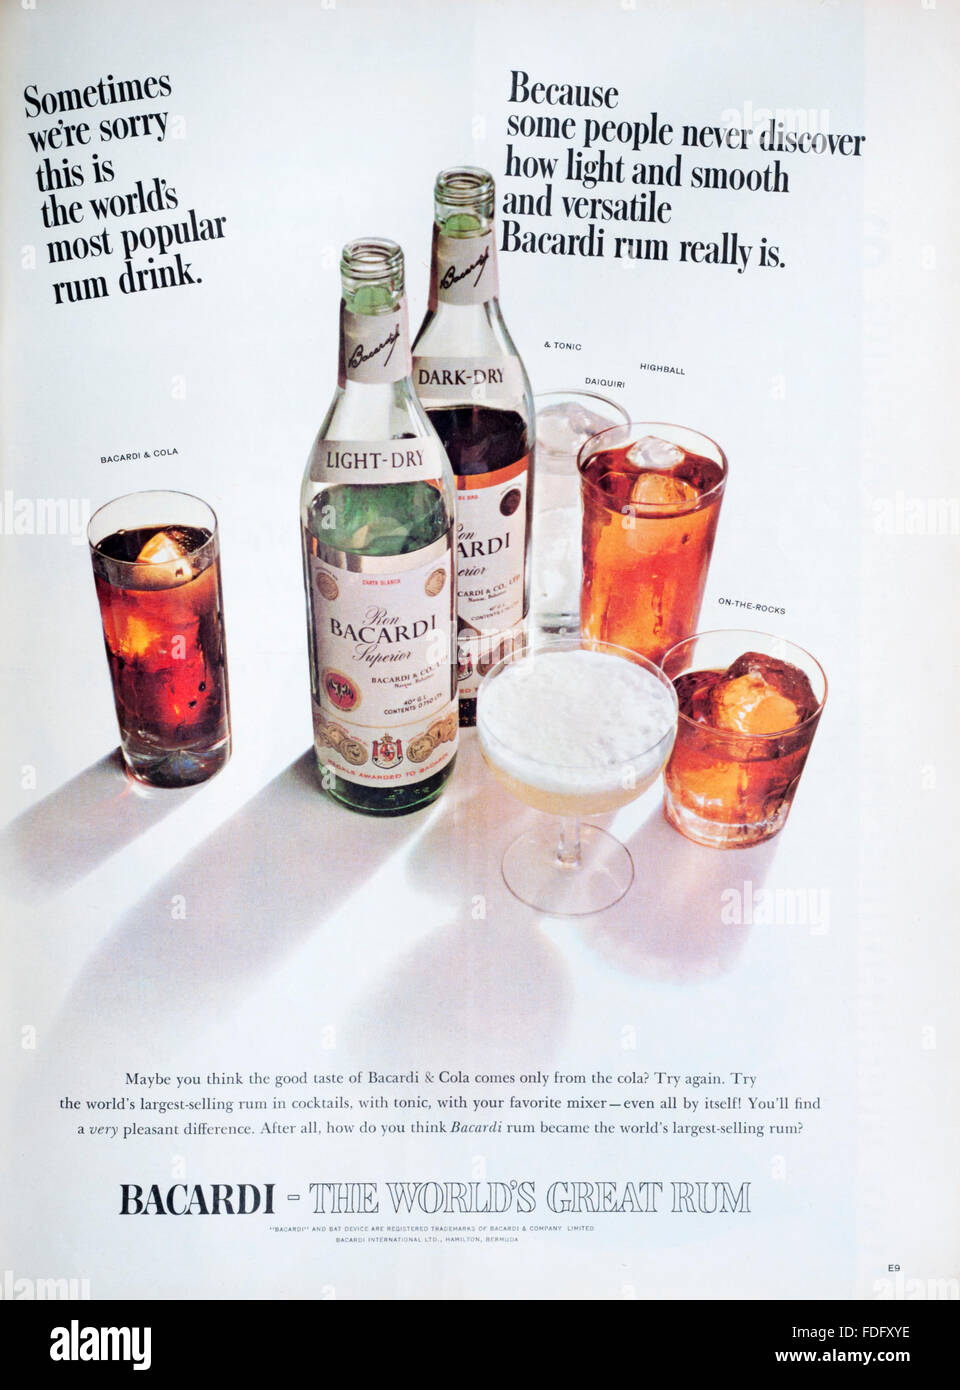 sexism in the bacardi liquor advertisement About bacardi ocho created in 1862, bacardí ocho remained the sole preserve of the bacardí family for seven generations used only for the most special occasions, this golden sipping rum is one of the oldest private rum blends in the world.